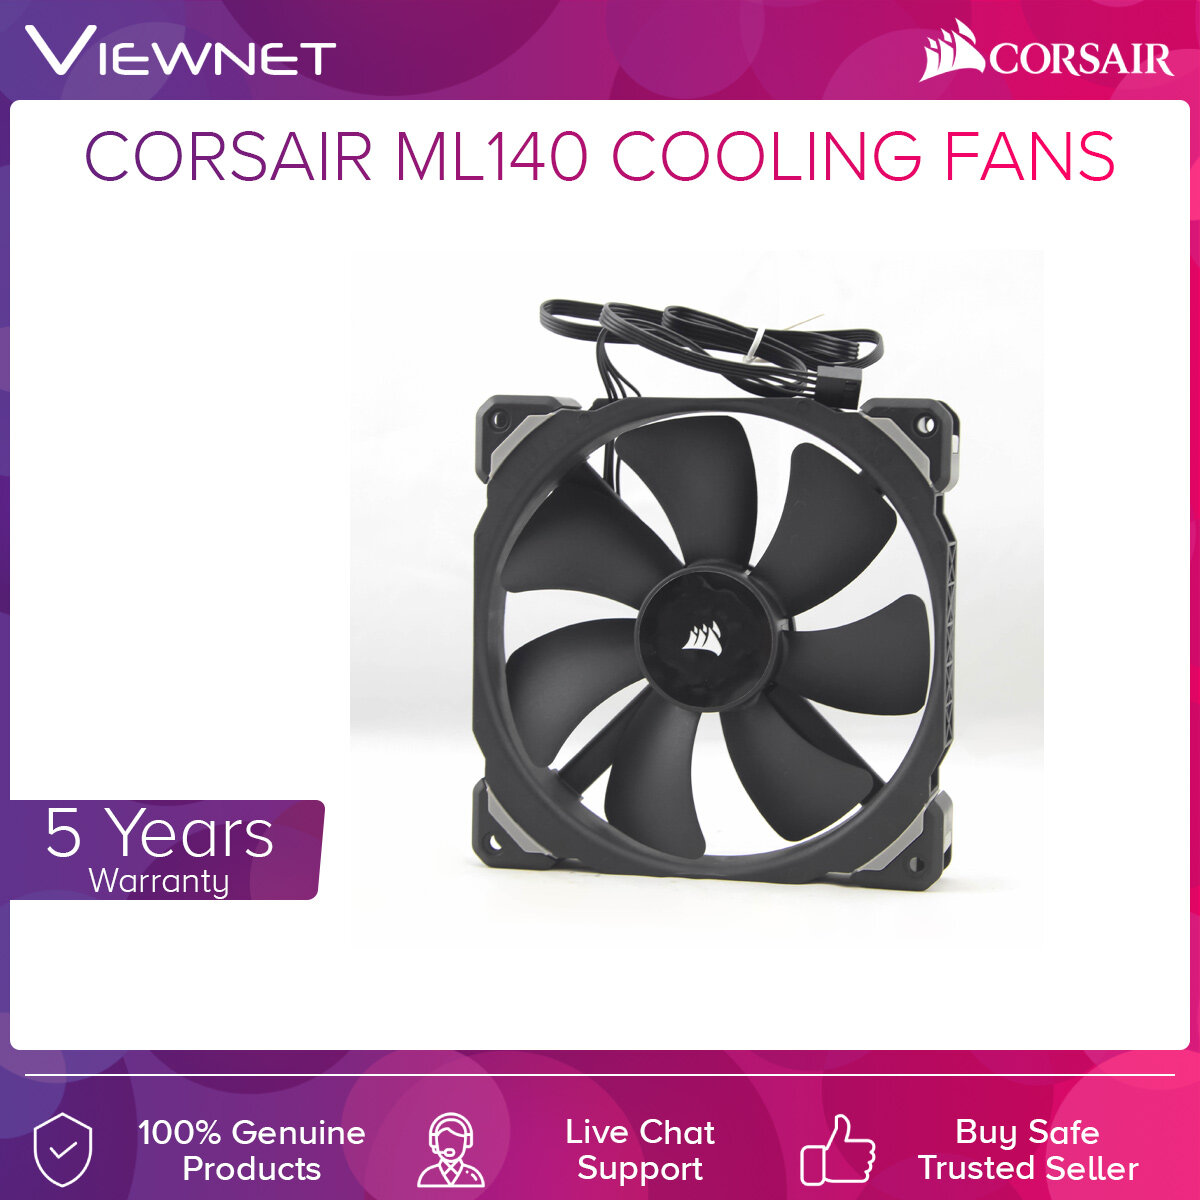 Corsair ML140 Cooling Fans Pro RGB LED 140mm PWM Premium Magnetic Levitation Fan, 400-1200 RPM, 20.4 dBA - Single Pack, Twin Pack With Lighting Node Pro